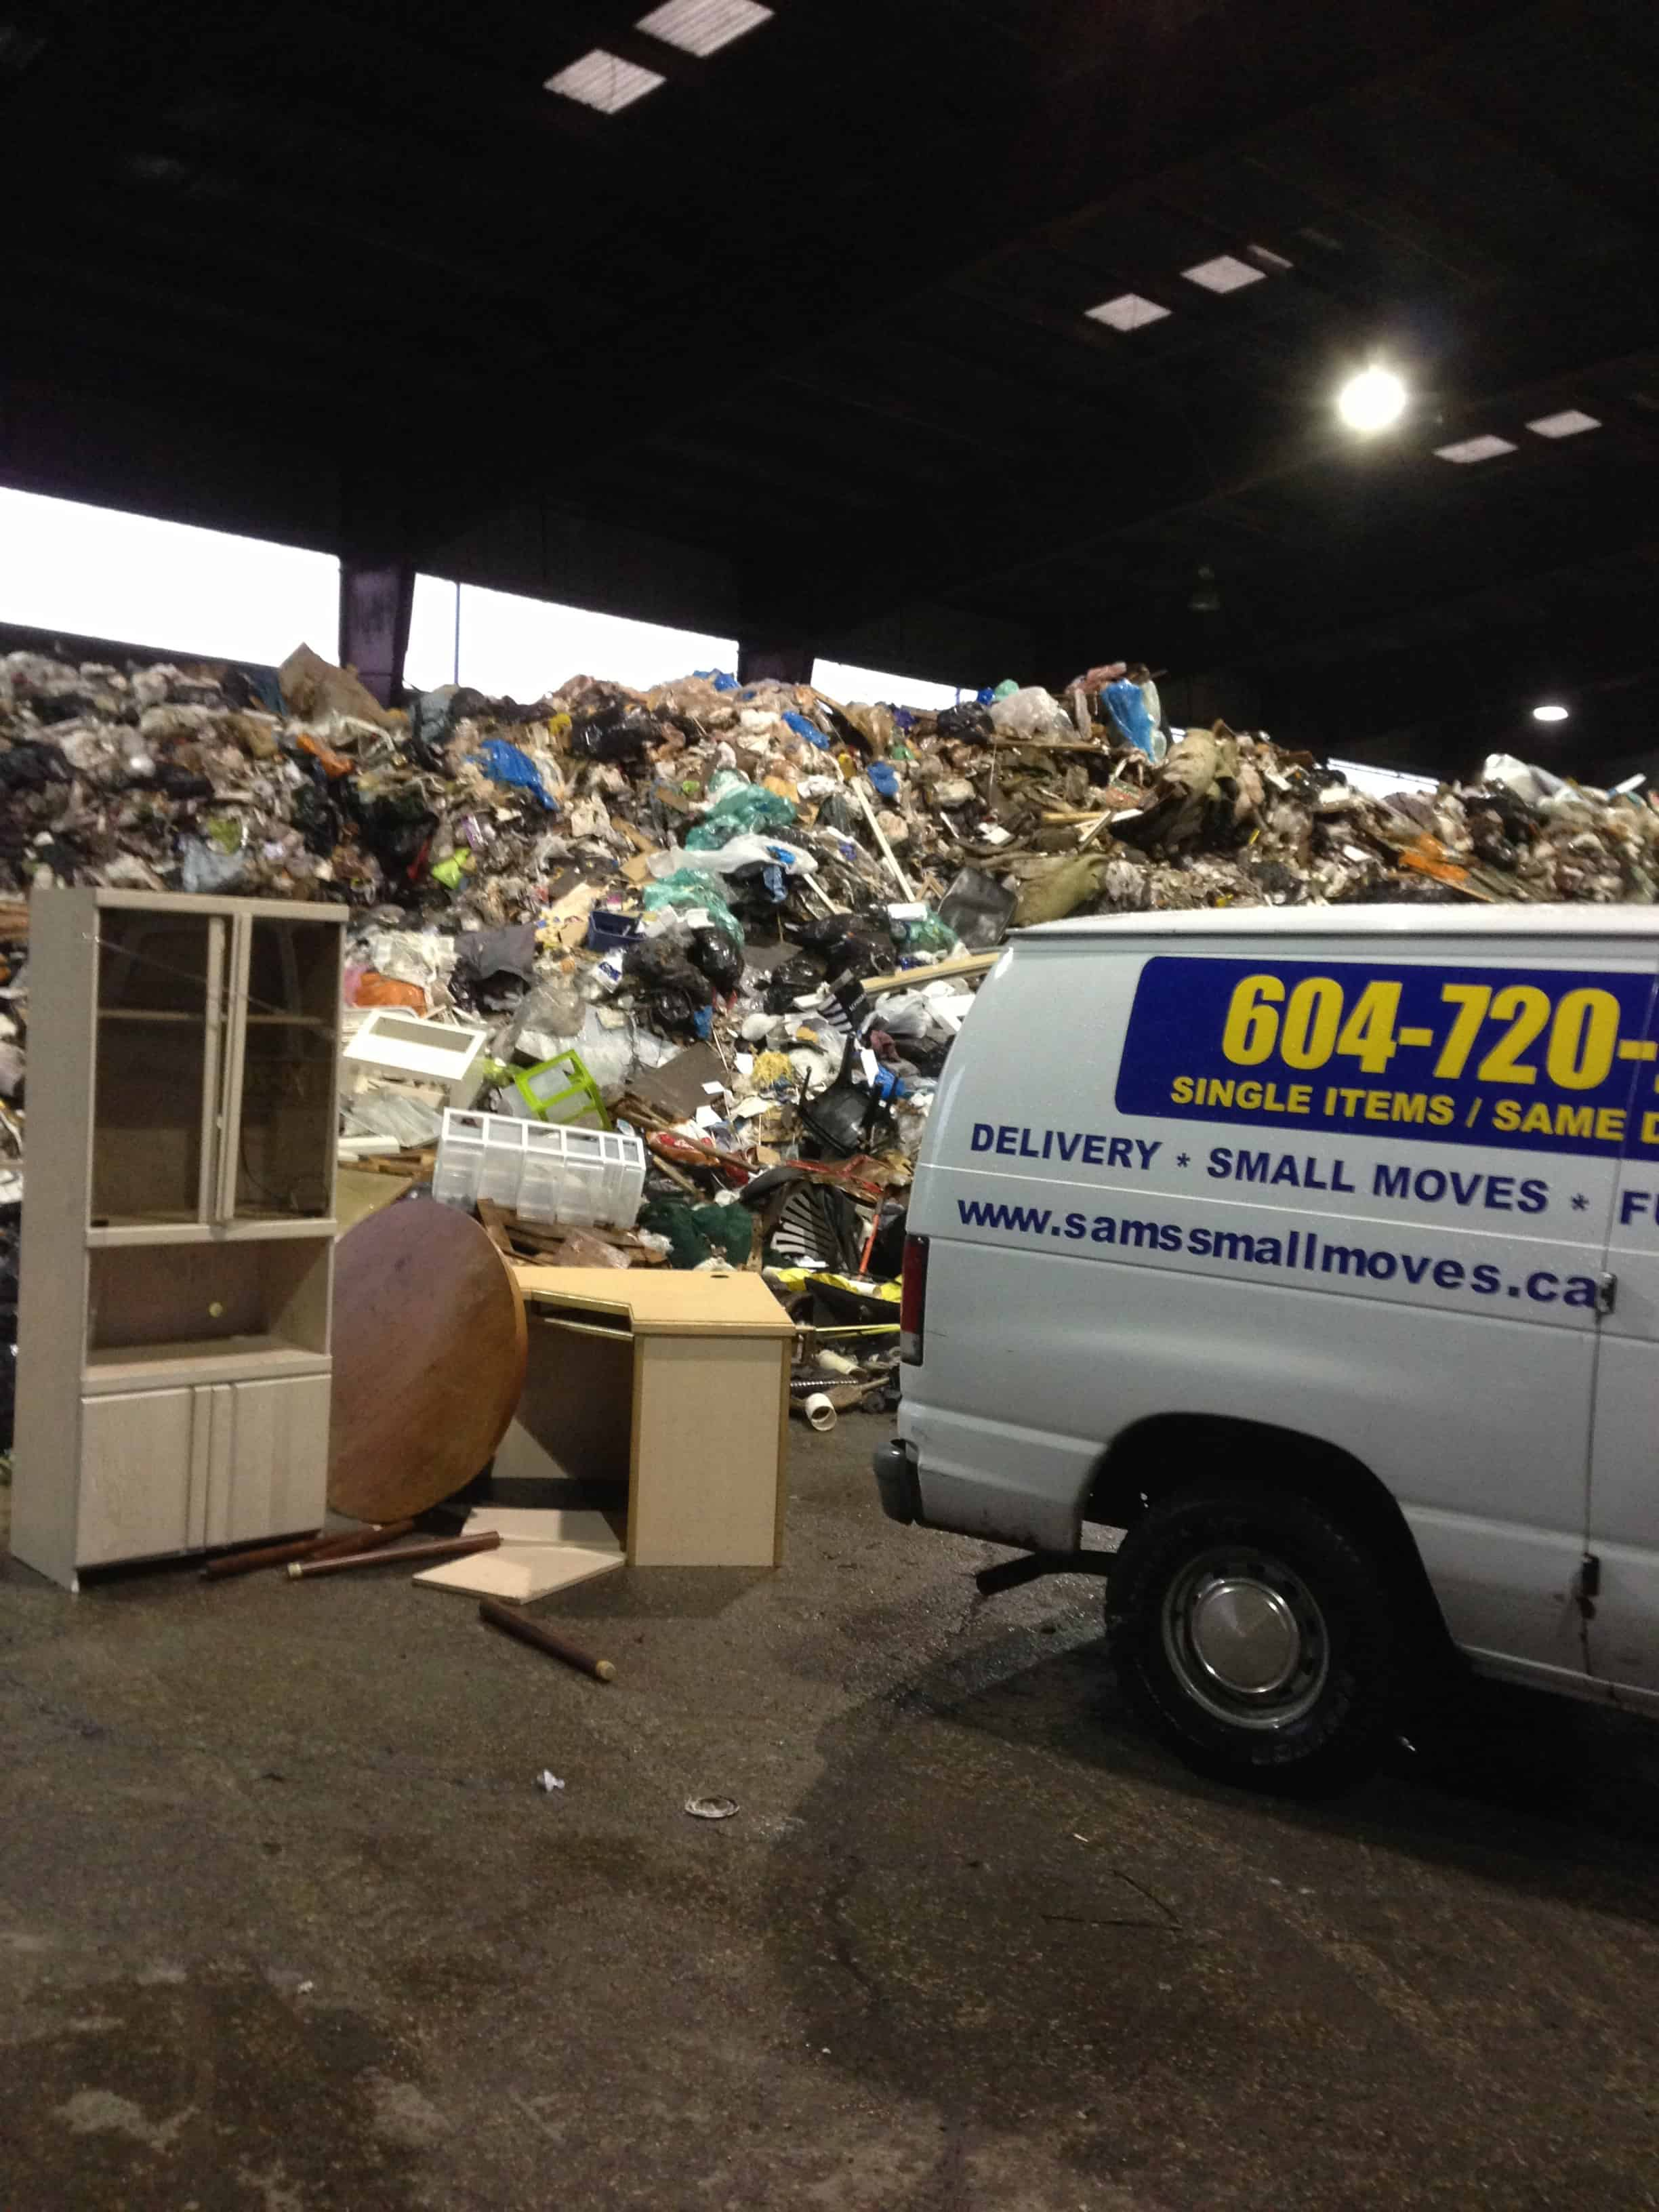 Cheap junk removal services in Vancouver